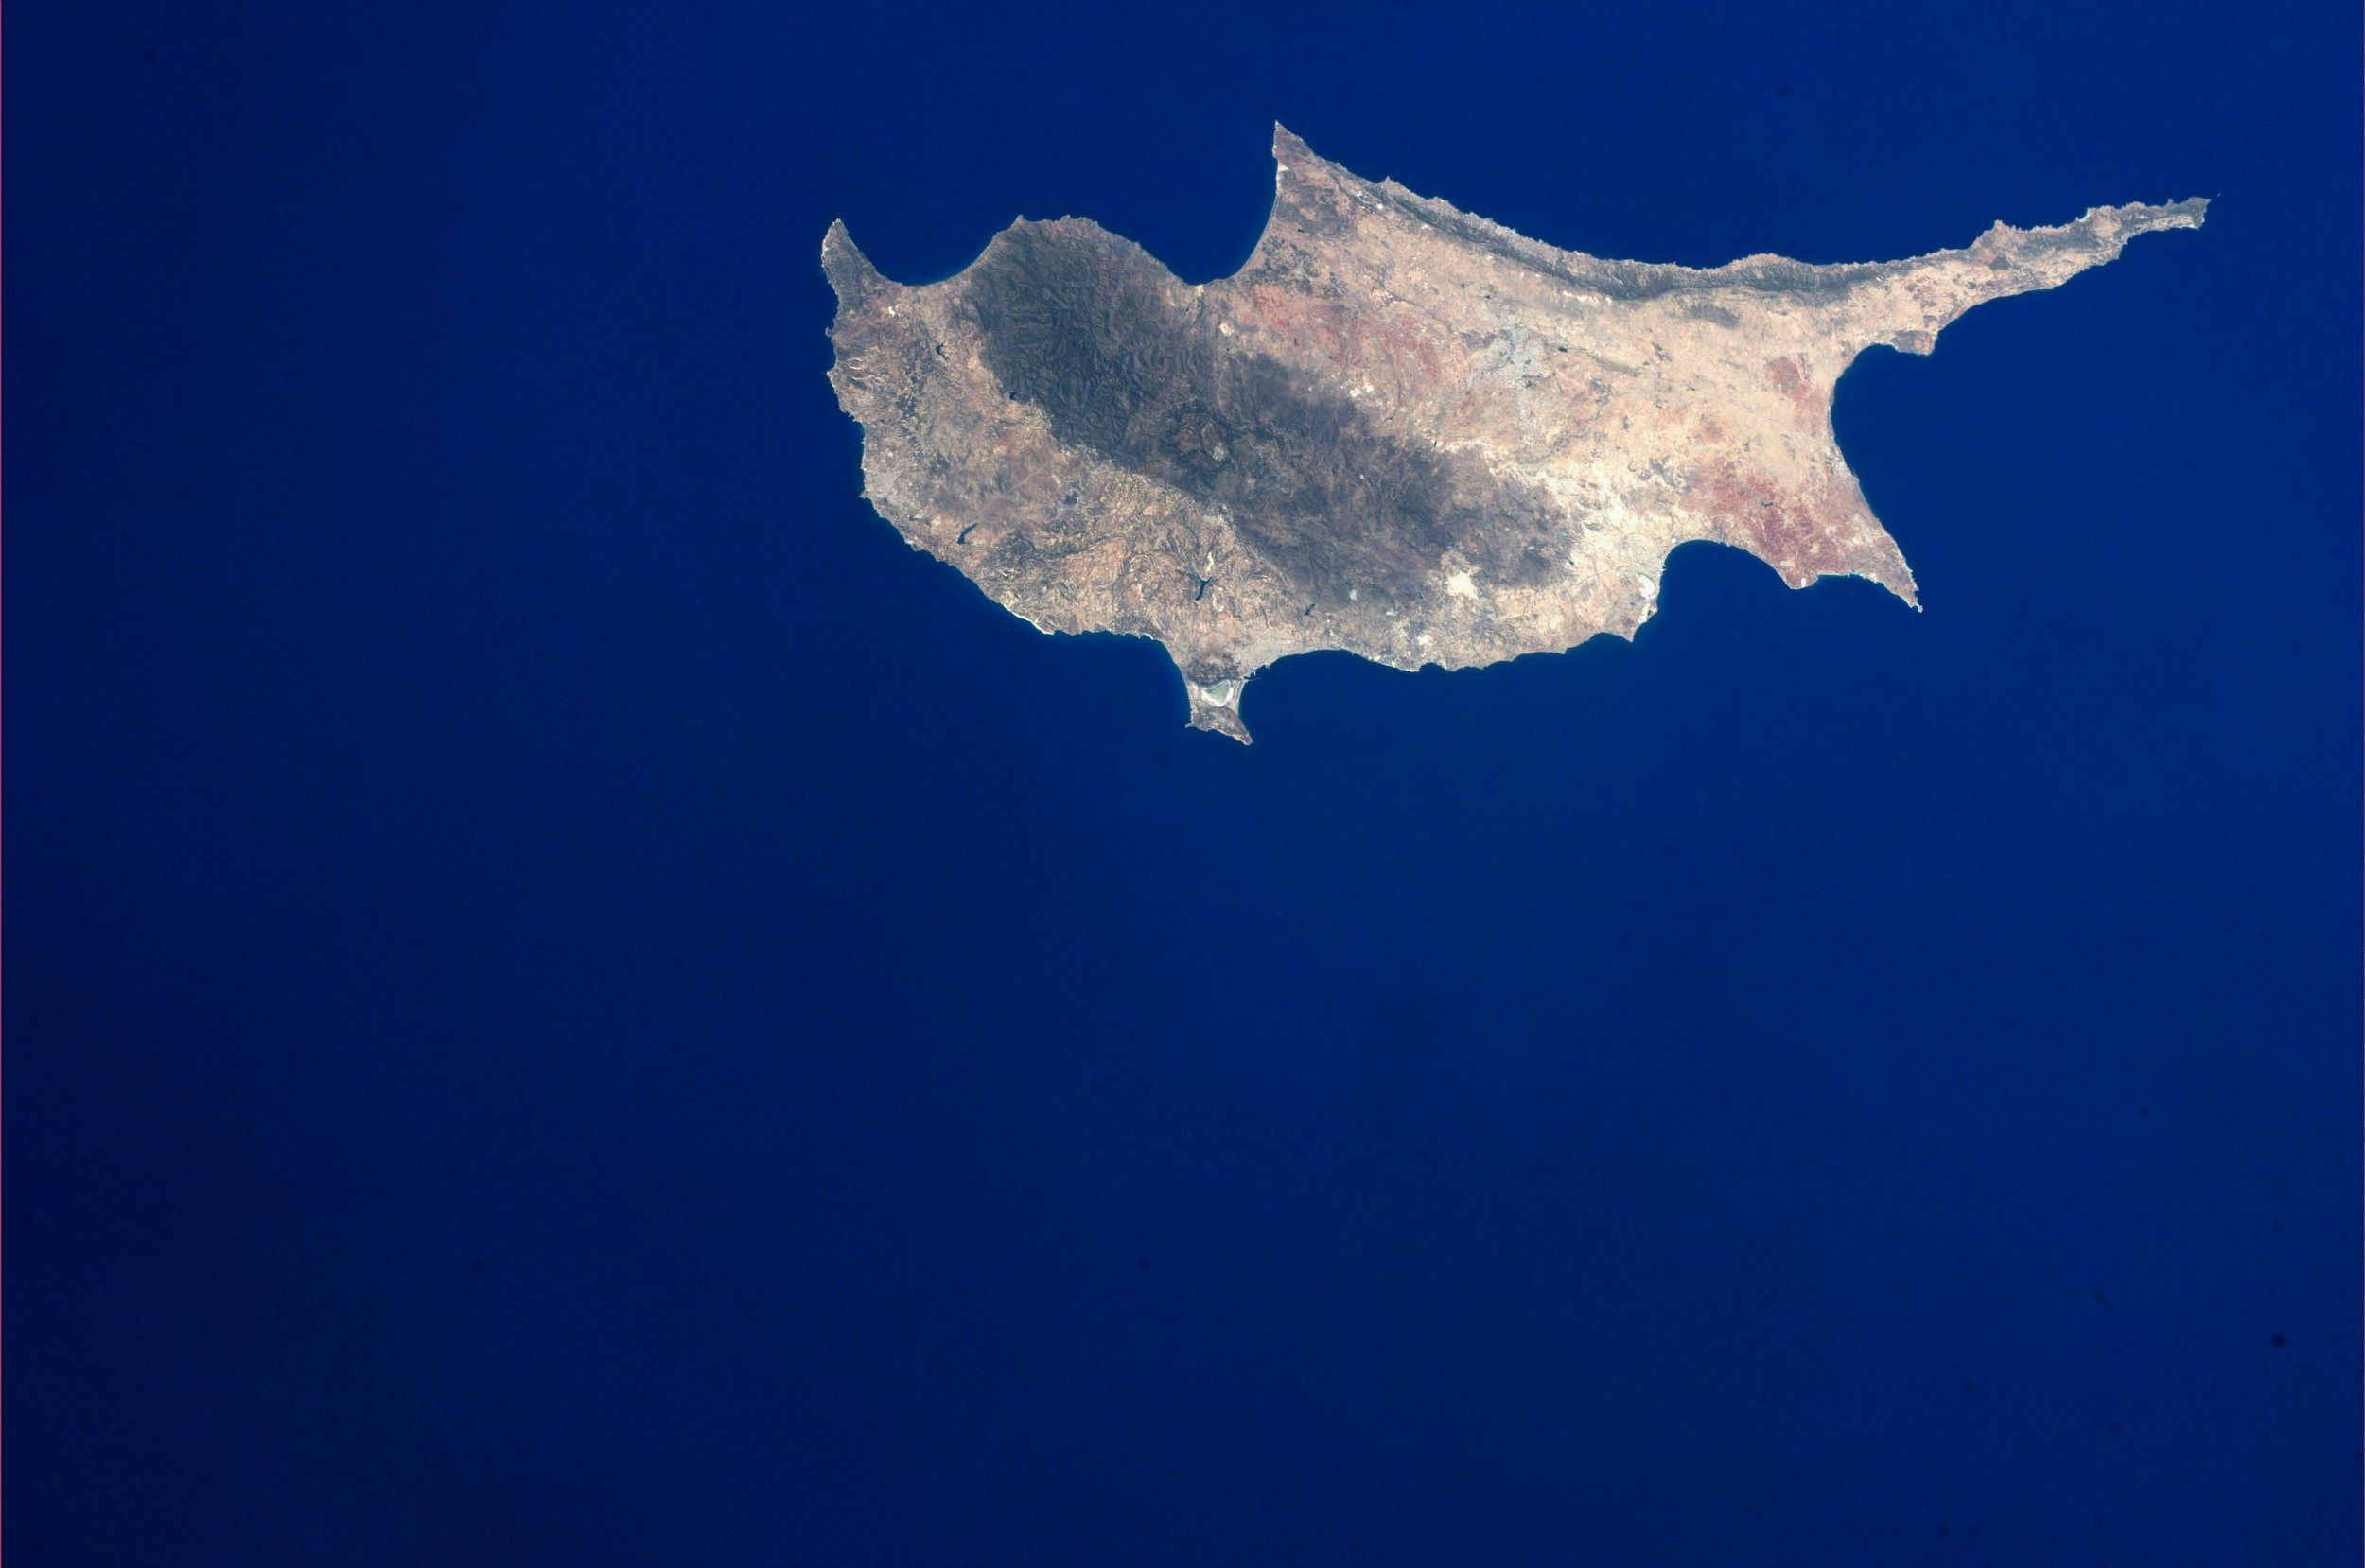 Cyprus.  Taken September 10, 2013.  KN from space.